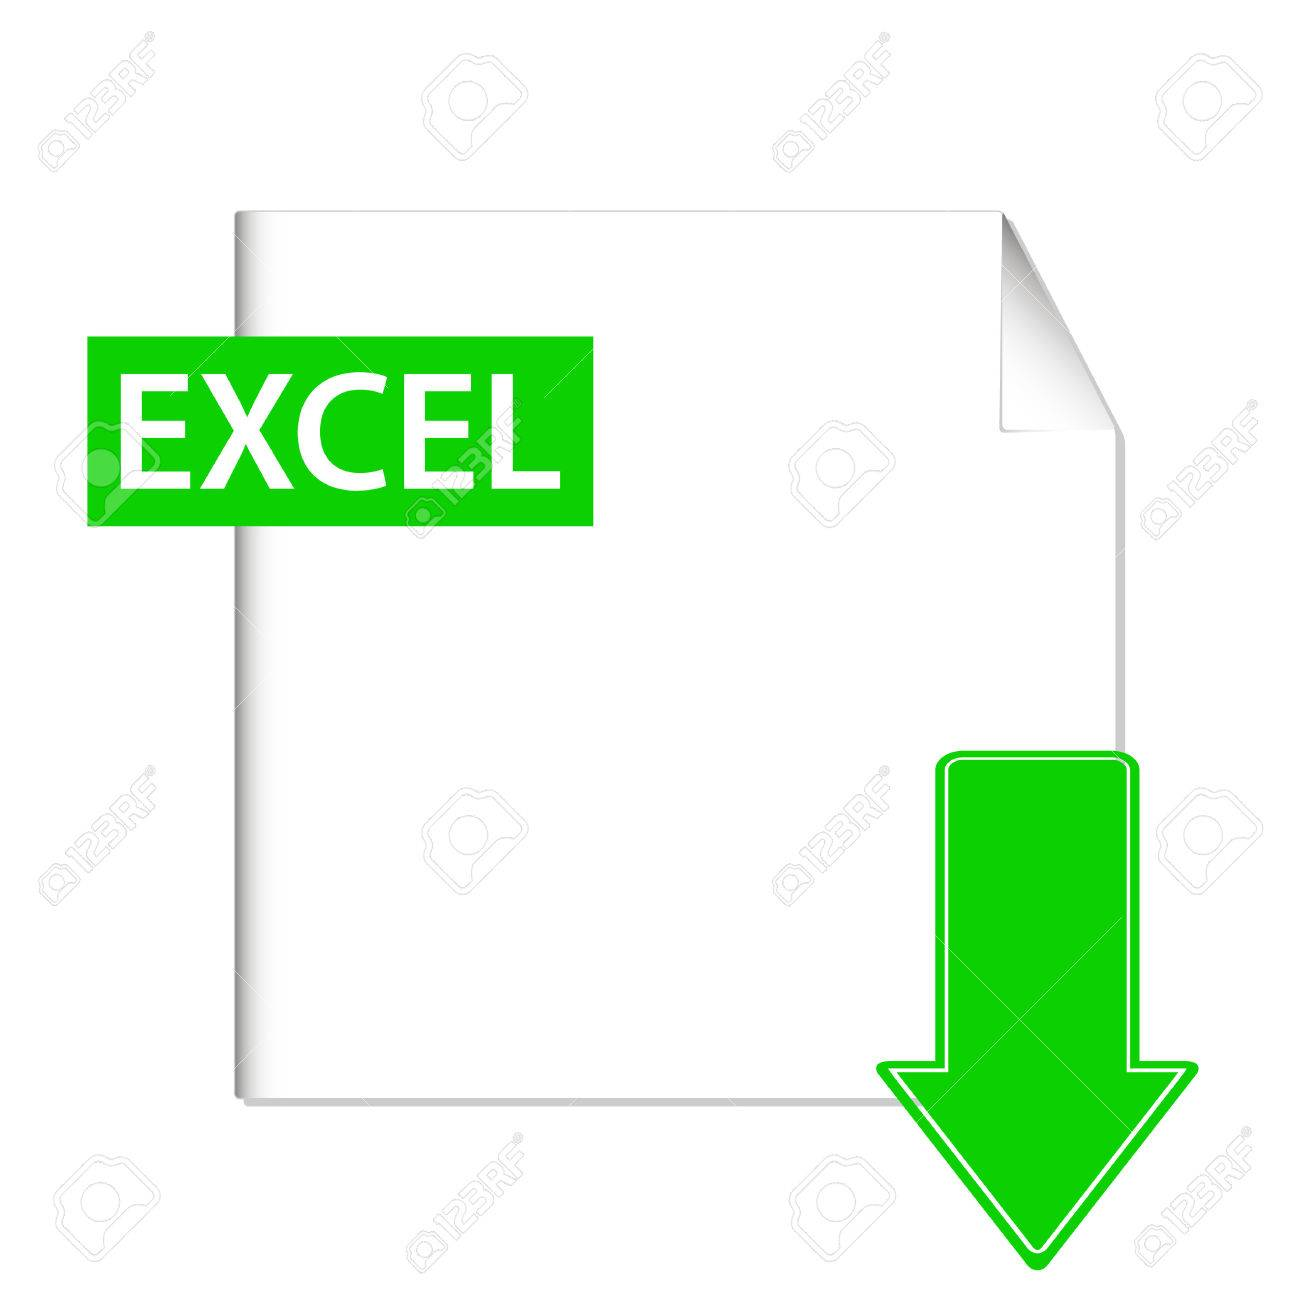 Background image in excel - Jpg 1300x1300 Excel White Background